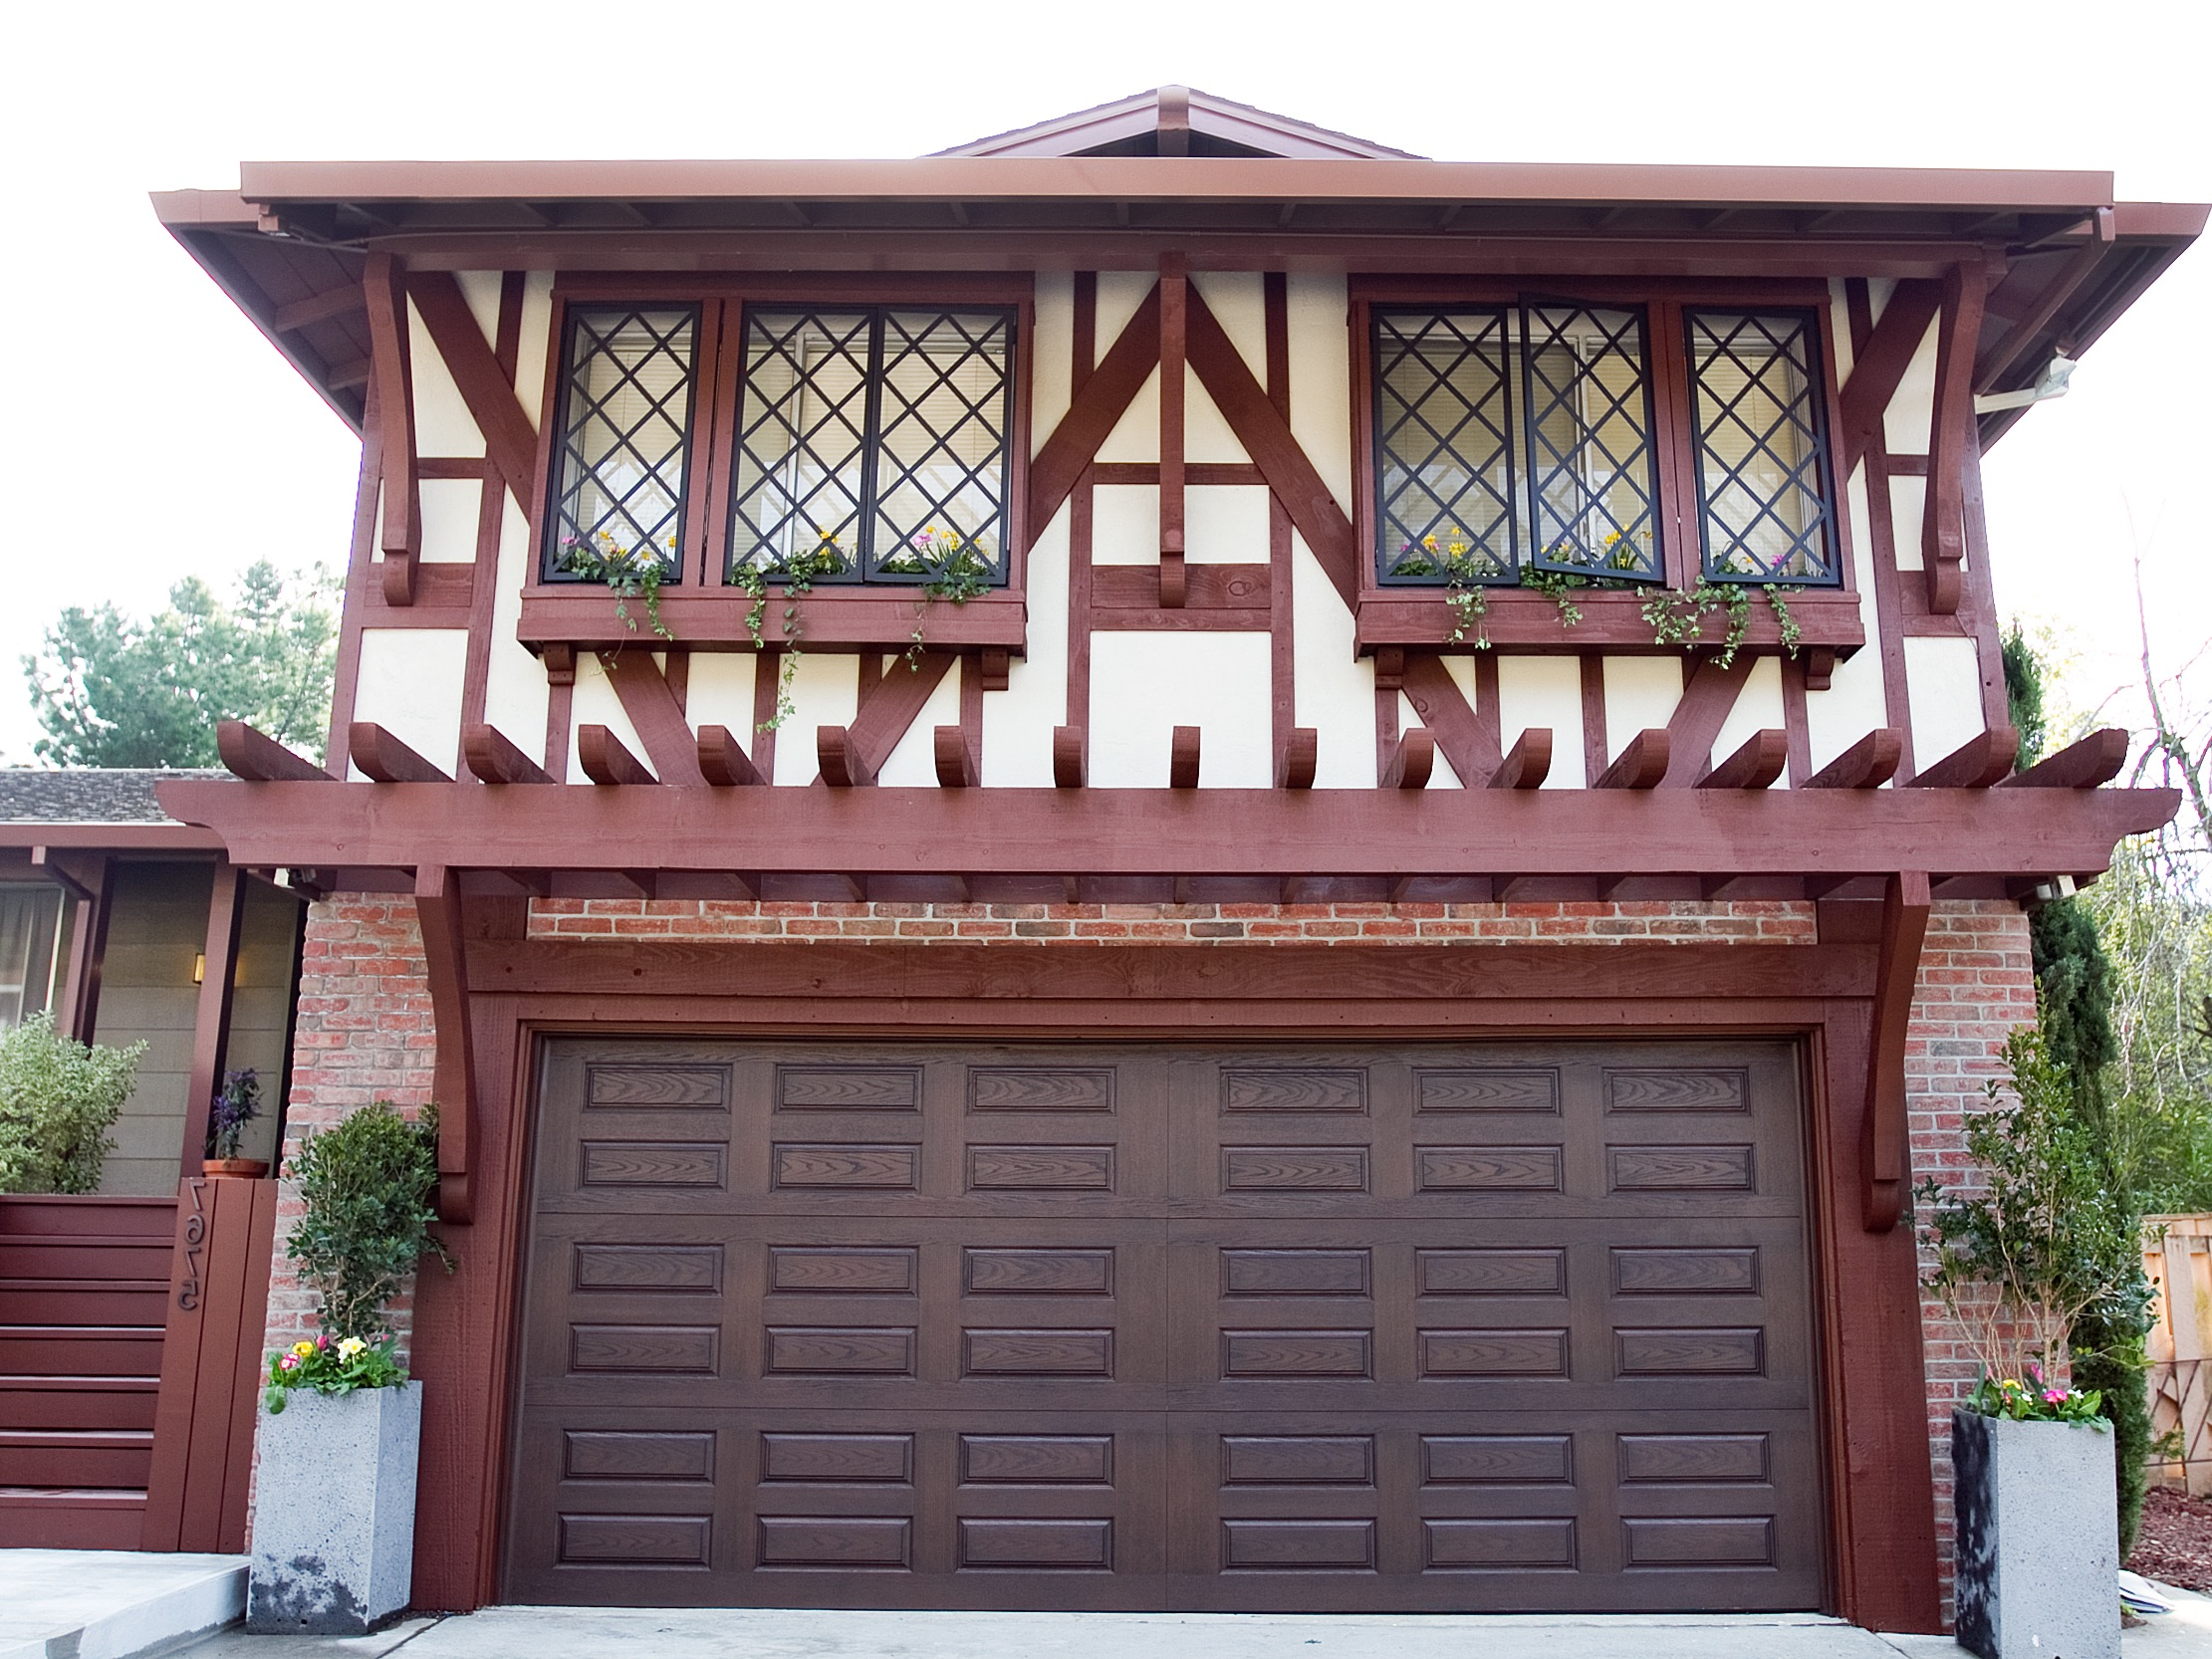 Custom Wooden Carriage Garage Doors (Image 9 of 38)